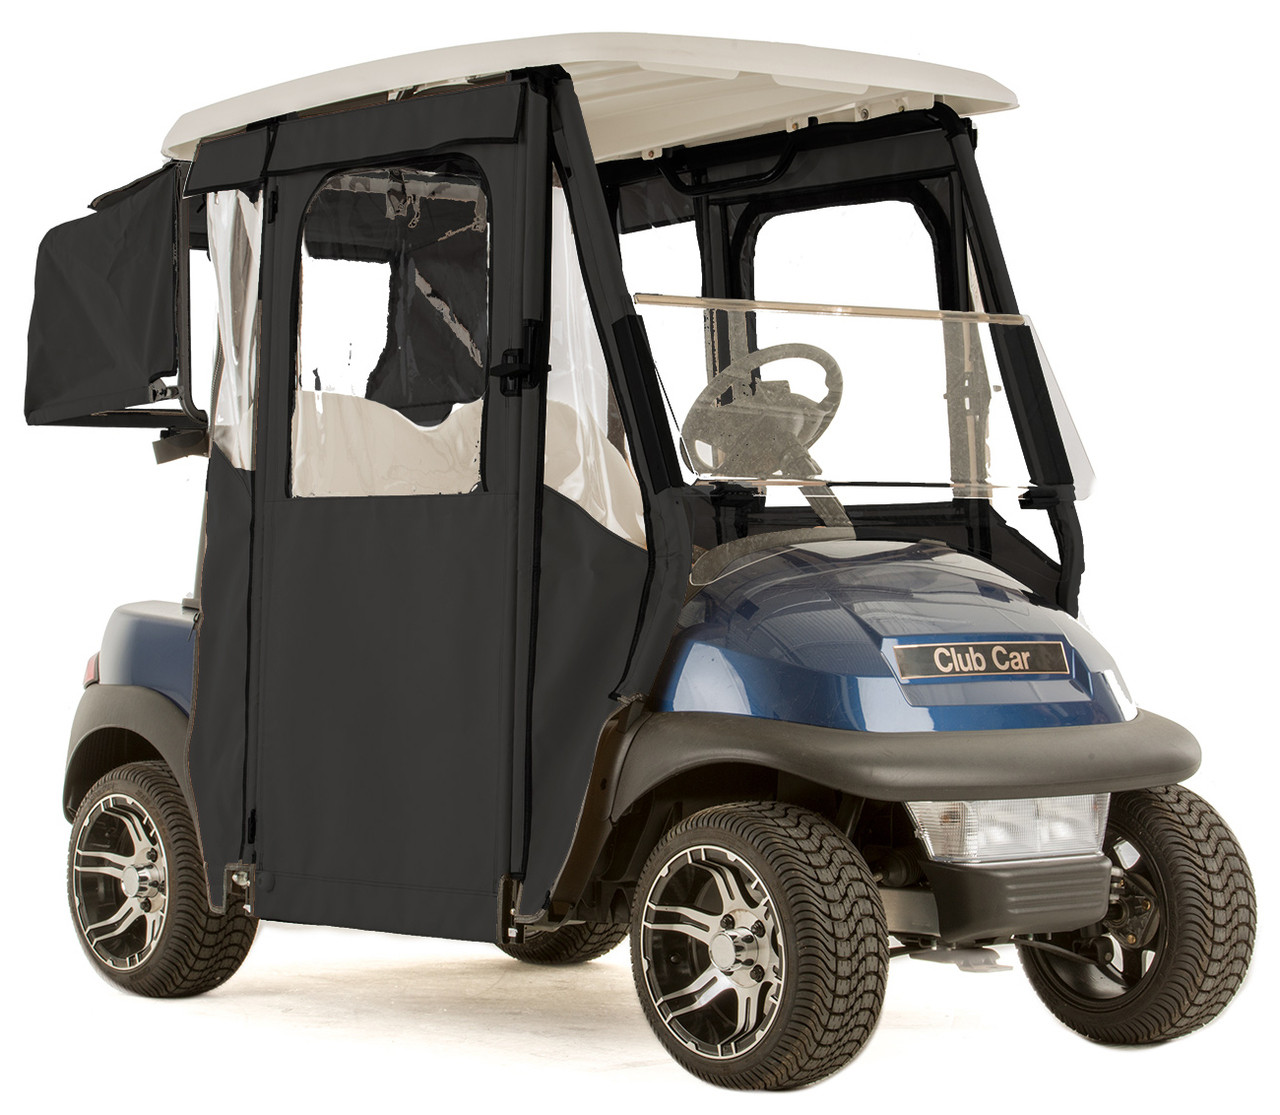 Golf Cart Parts, Tires and Accessories | Golf Cart King Ezgo Golf Cart Accessories Html on ezgo hunting golf carts, ezgo gas golf carts, ez go cart accessories, ezgo lifted carts, lsv golf carts and accessories, ezgo golf carts dealers, ezgo golf car, ezgo electric carts, ezgo utility golf carts, ezgo custom golf carts, ezgo txt electric manual, custom golf carts accessories, club car cart accessories, golf car accessories,